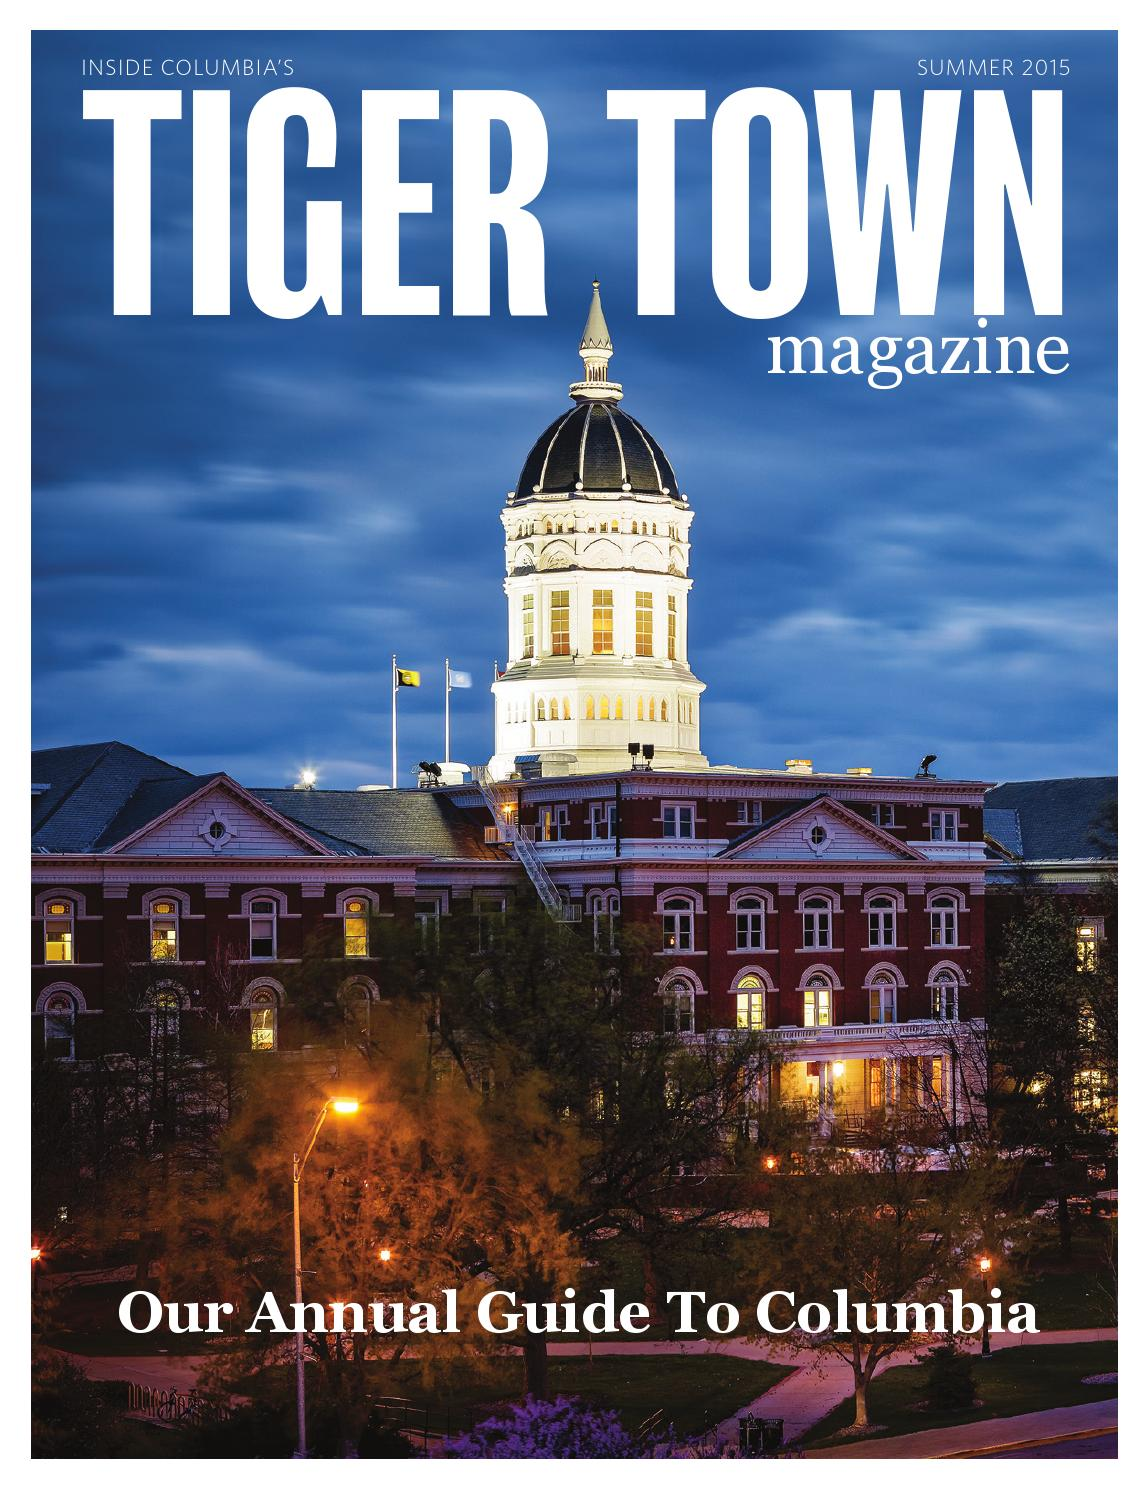 Tiger Town Summer 2015 by Inside Columbia Magazine - issuu